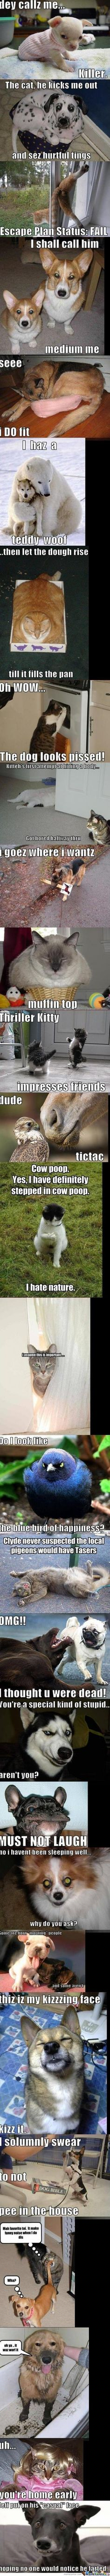 funny pets, funny animals, animal pictures, silly animals, funny animal pics